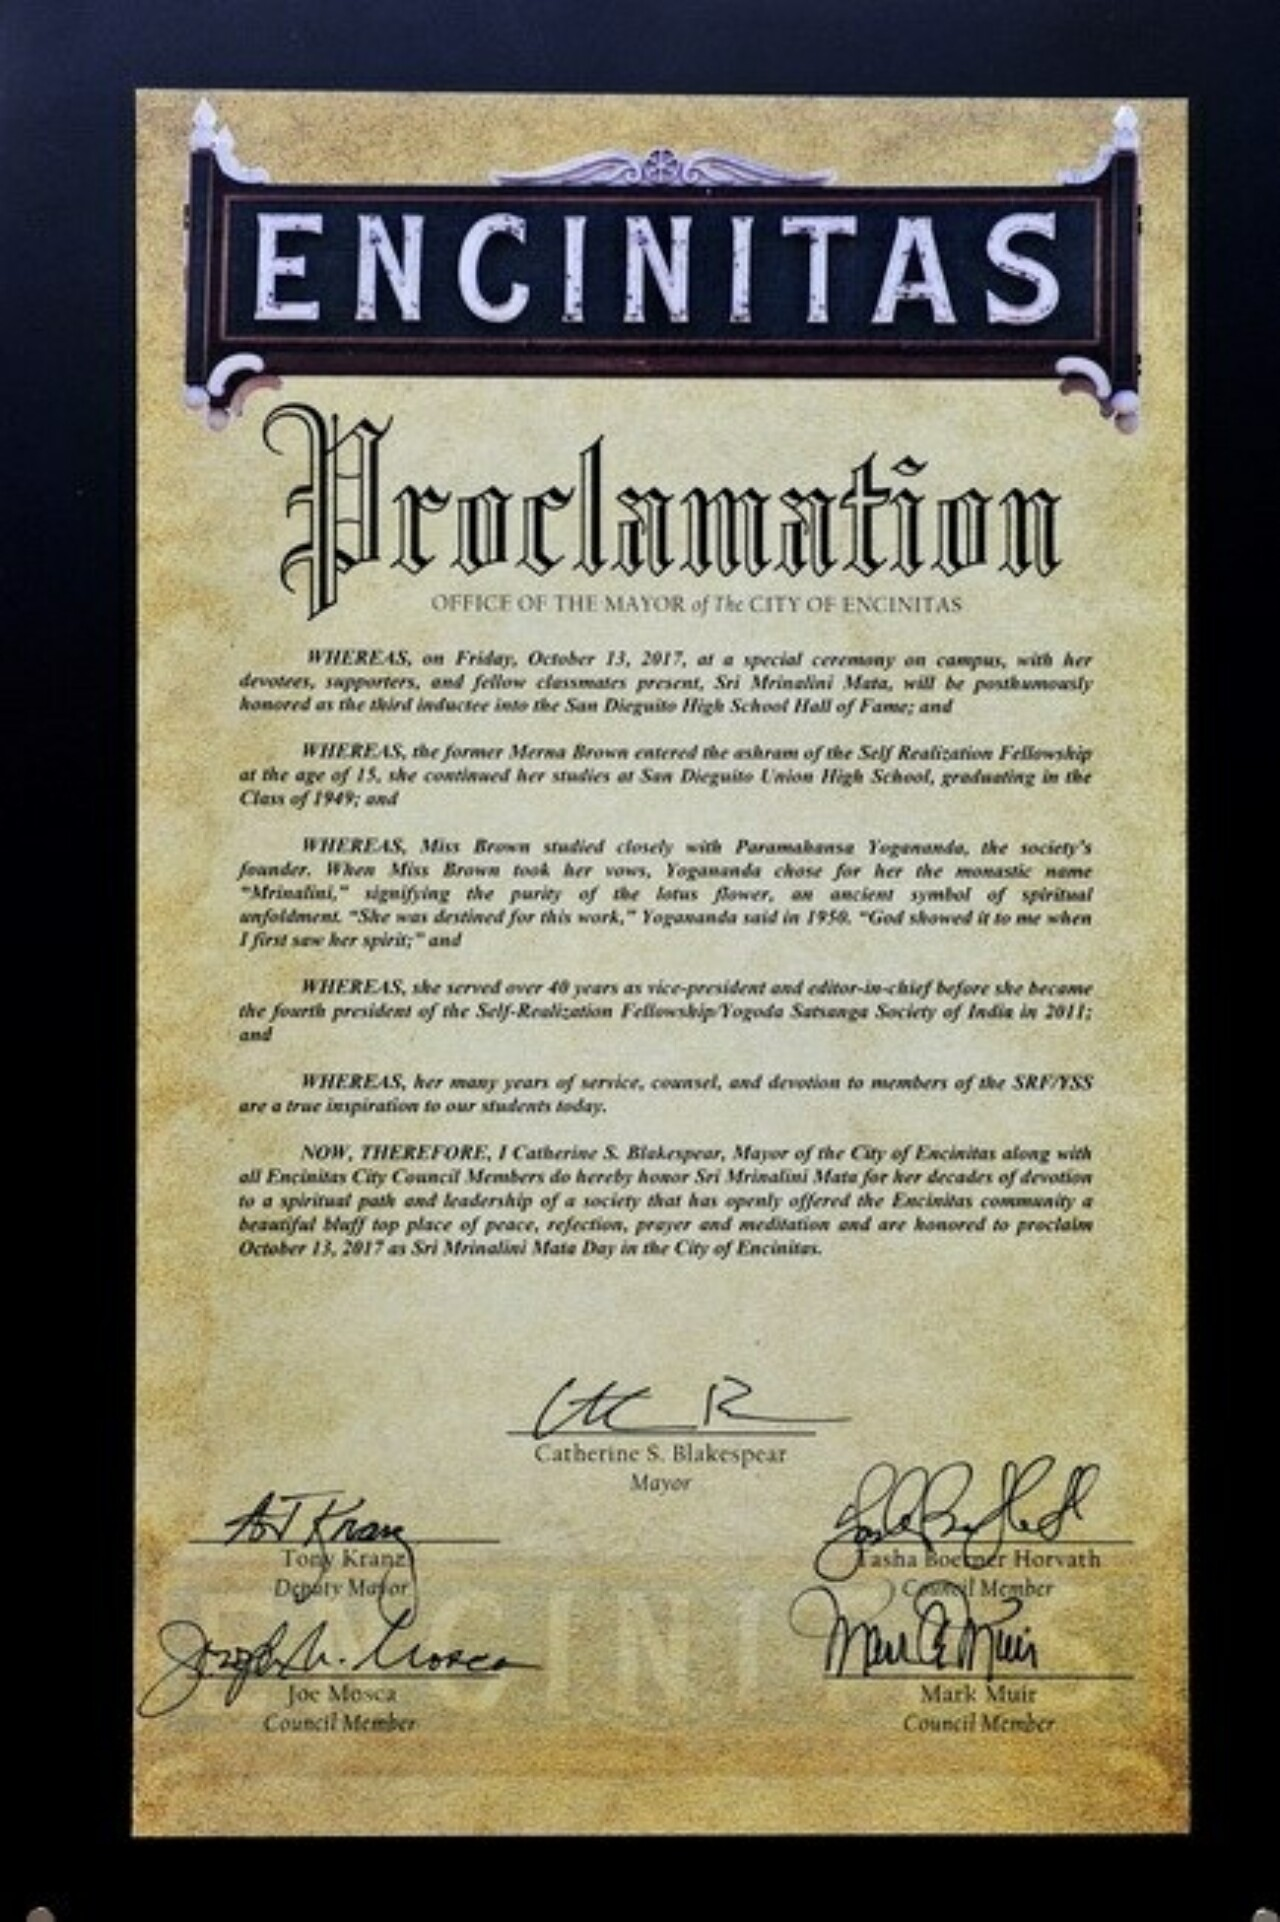 Proclamation From The City Of Encinitas